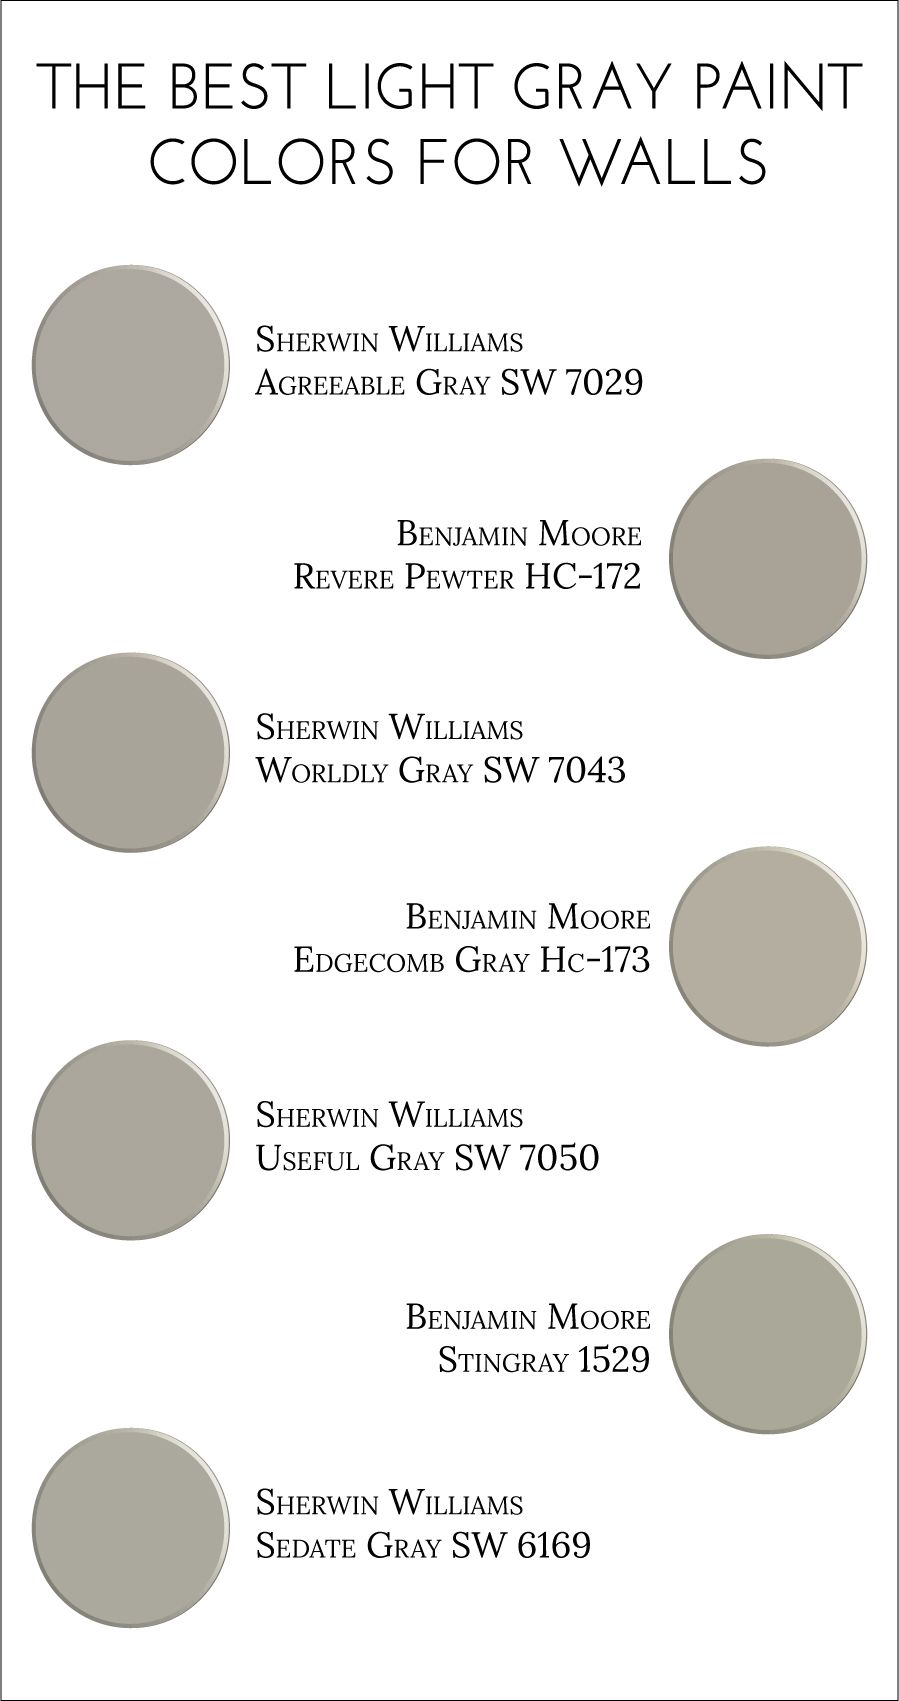 The best light gray paint colors for walls light grey for Color gray or grey